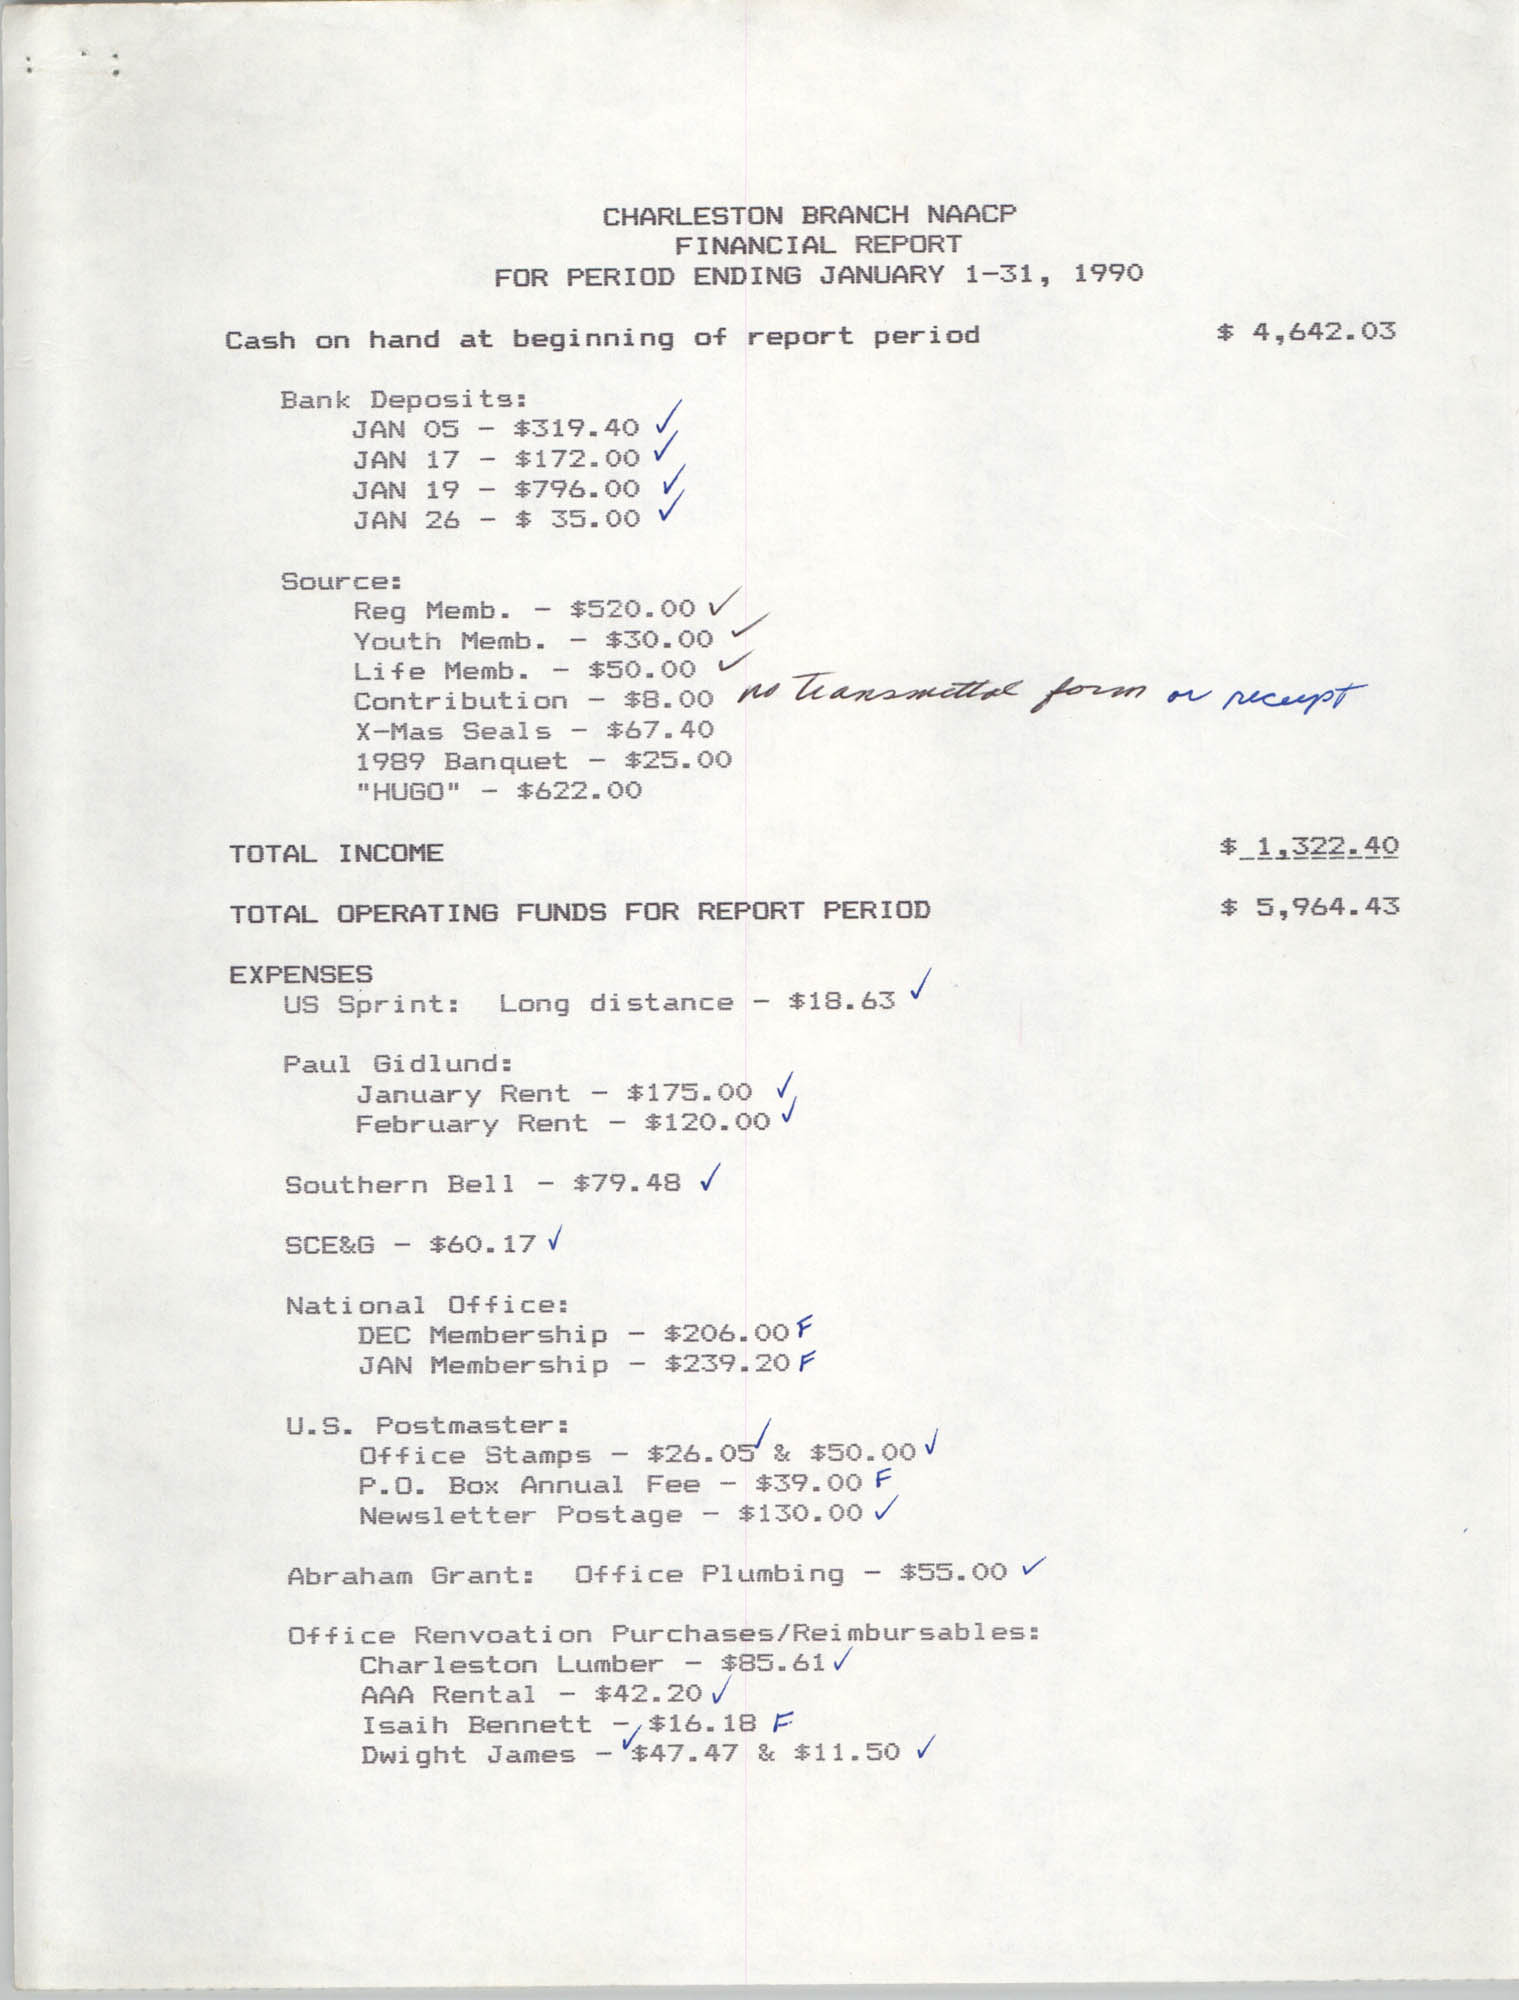 Charleston Branch of the NAACP Financial Report, January 1990, Page 1